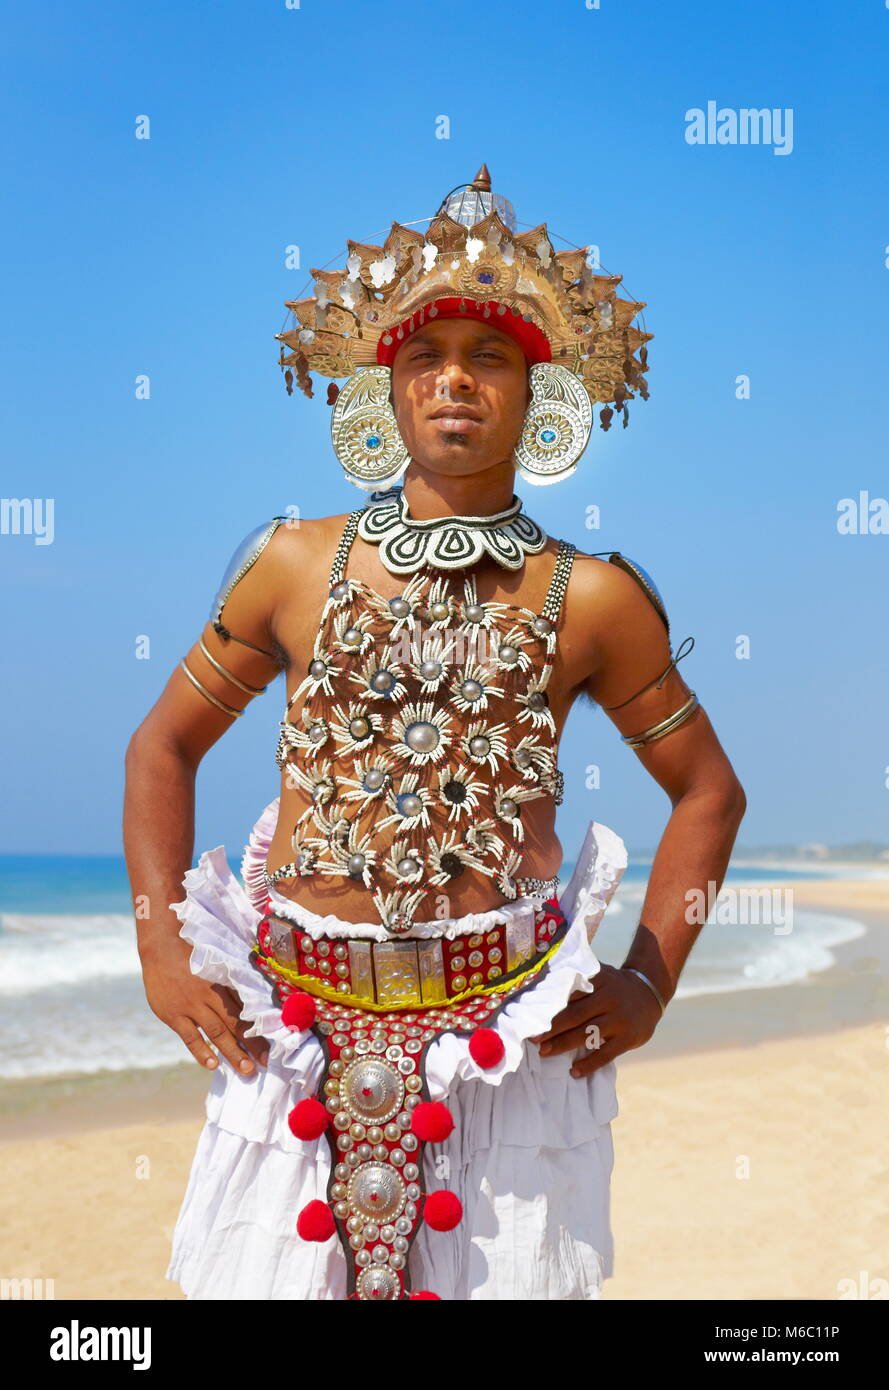 Danseur Local habillé en costume traditionnel, au Sri Lanka Photo Stock